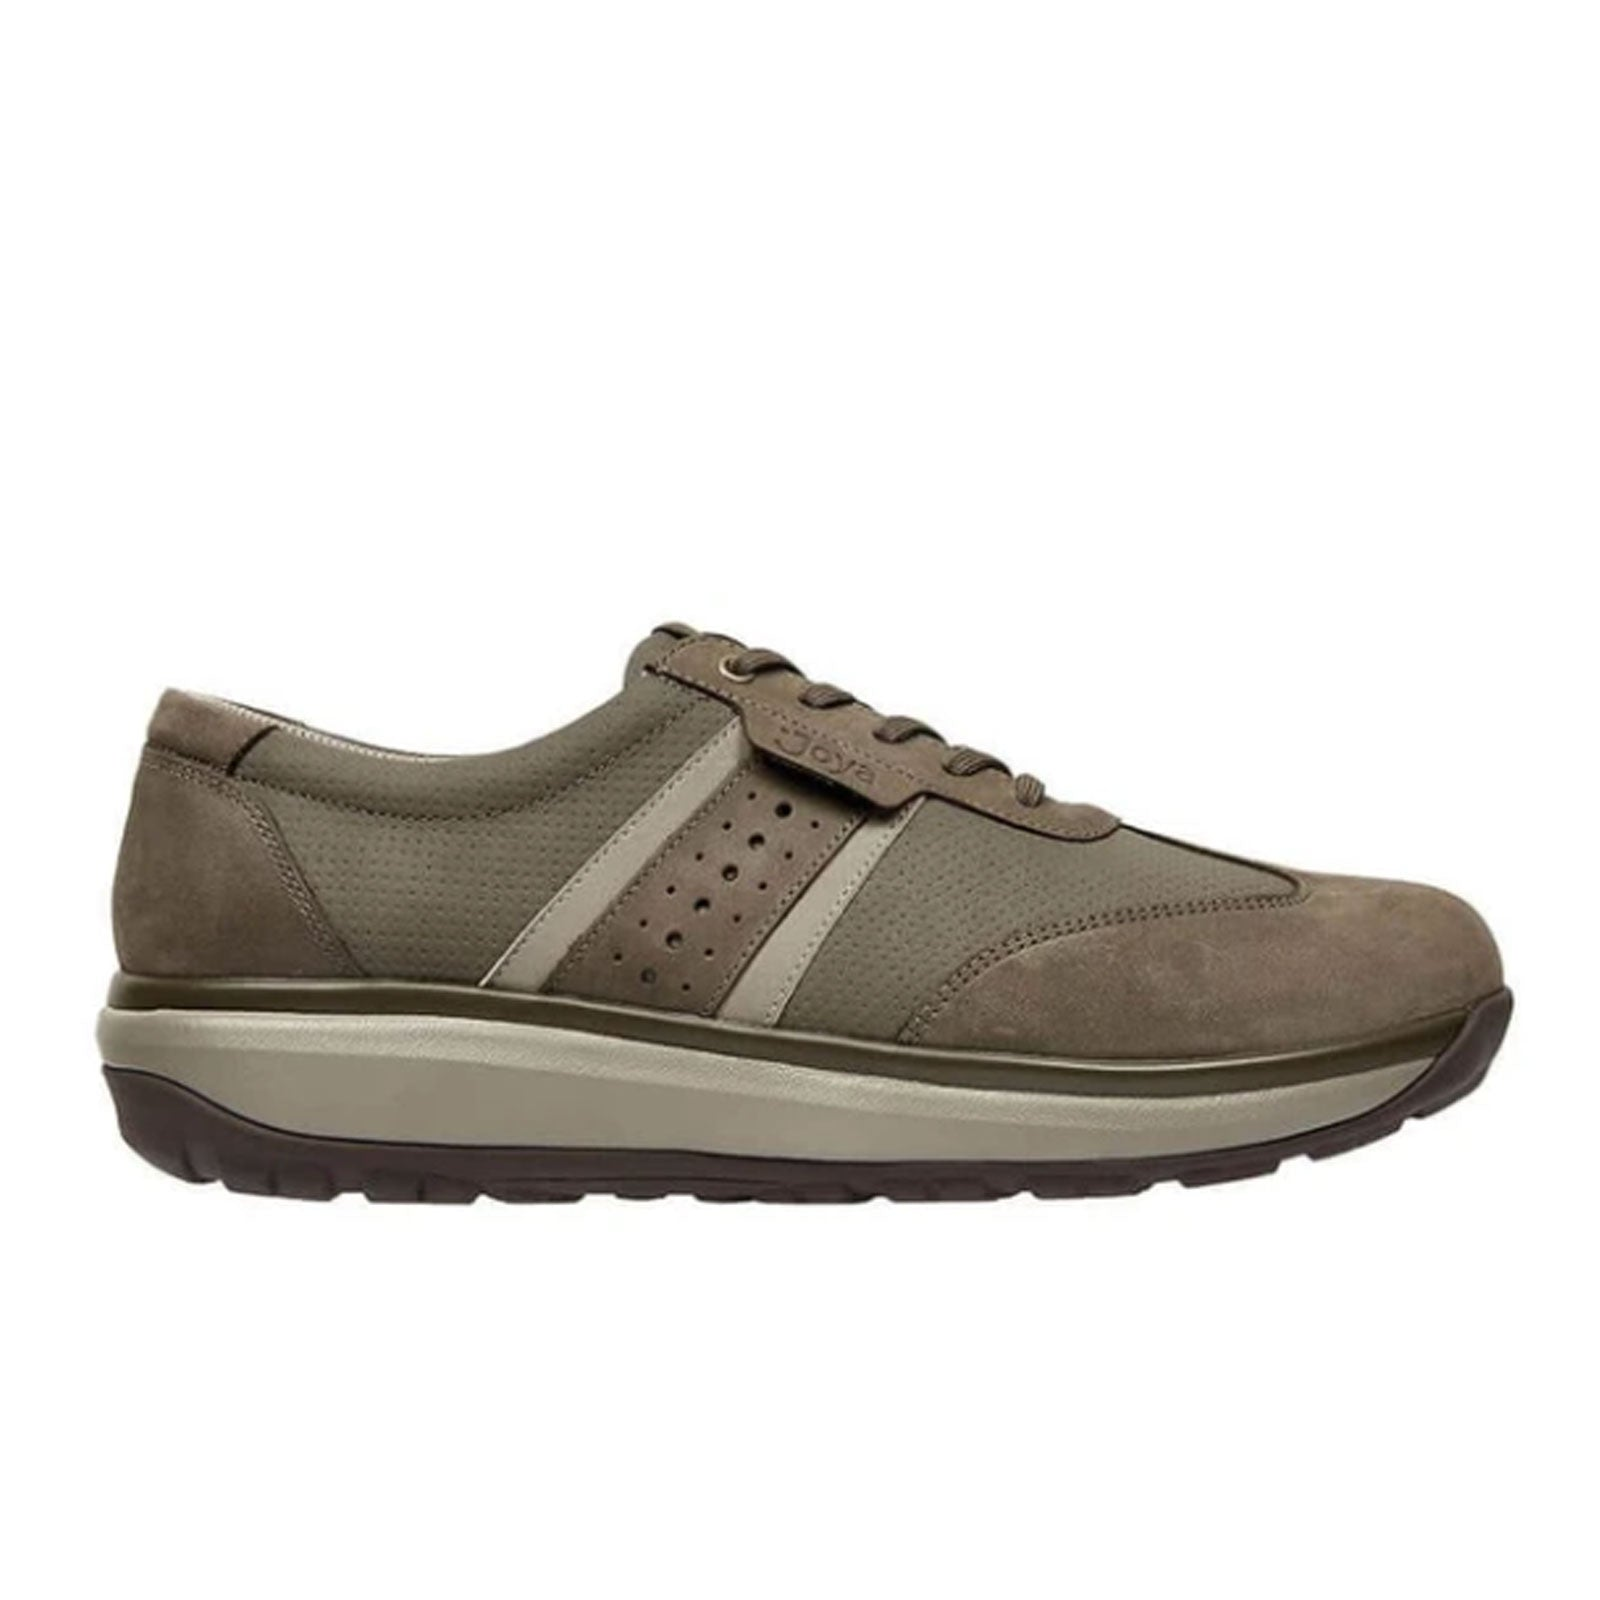 Joya David (Men) - Brown Dress/Casual|Sneakers - The Heel Shoe Fitters